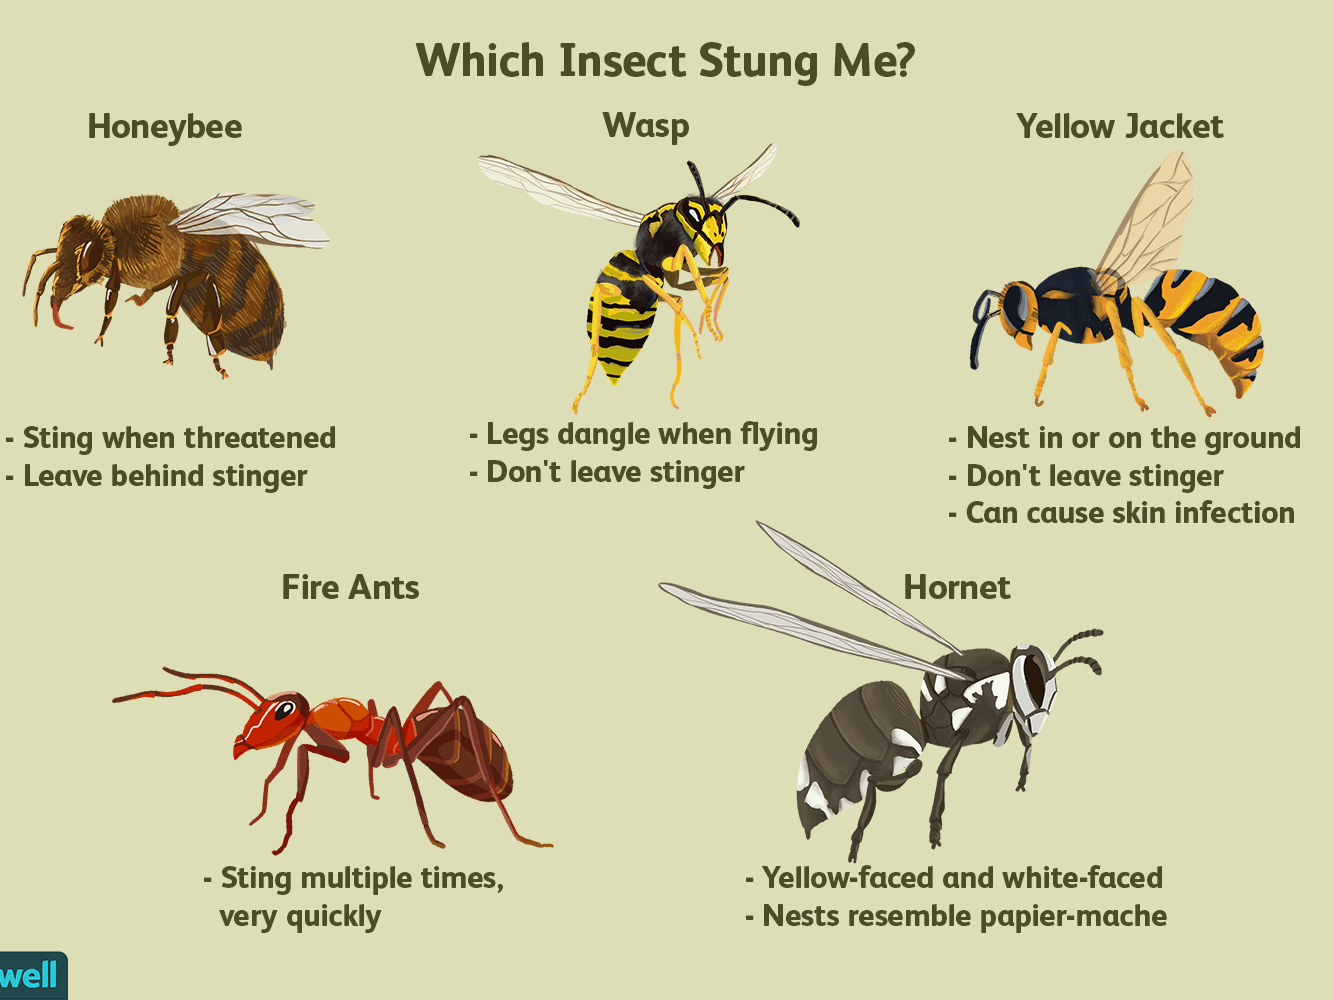 how do i know which kind of insect i was stung by 5c4e3f1cc9e77c0001d7bae4